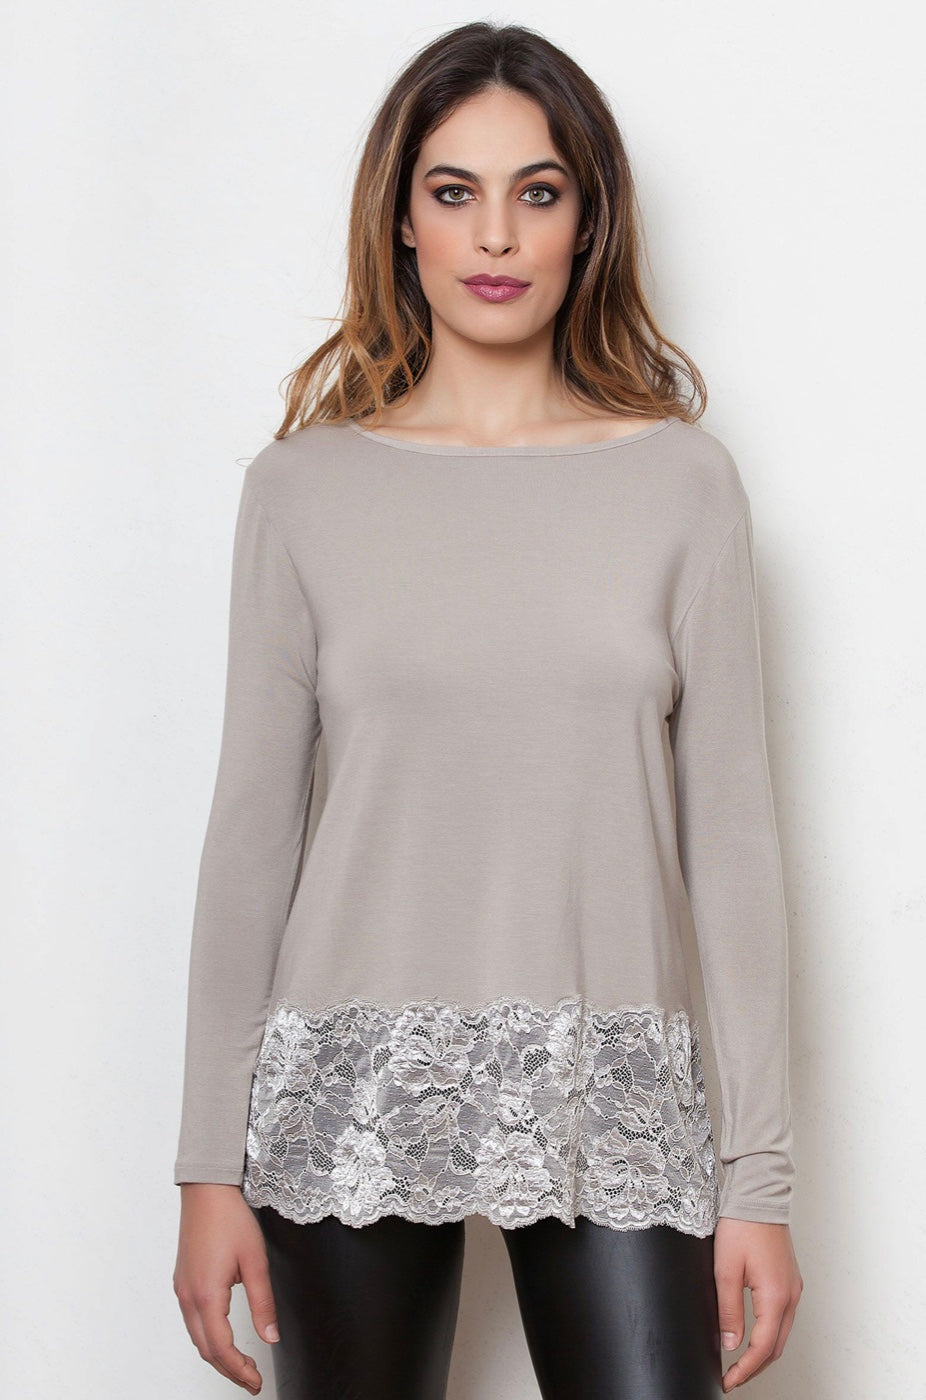 EGI Long Sleeved micromodal and lace top 1758